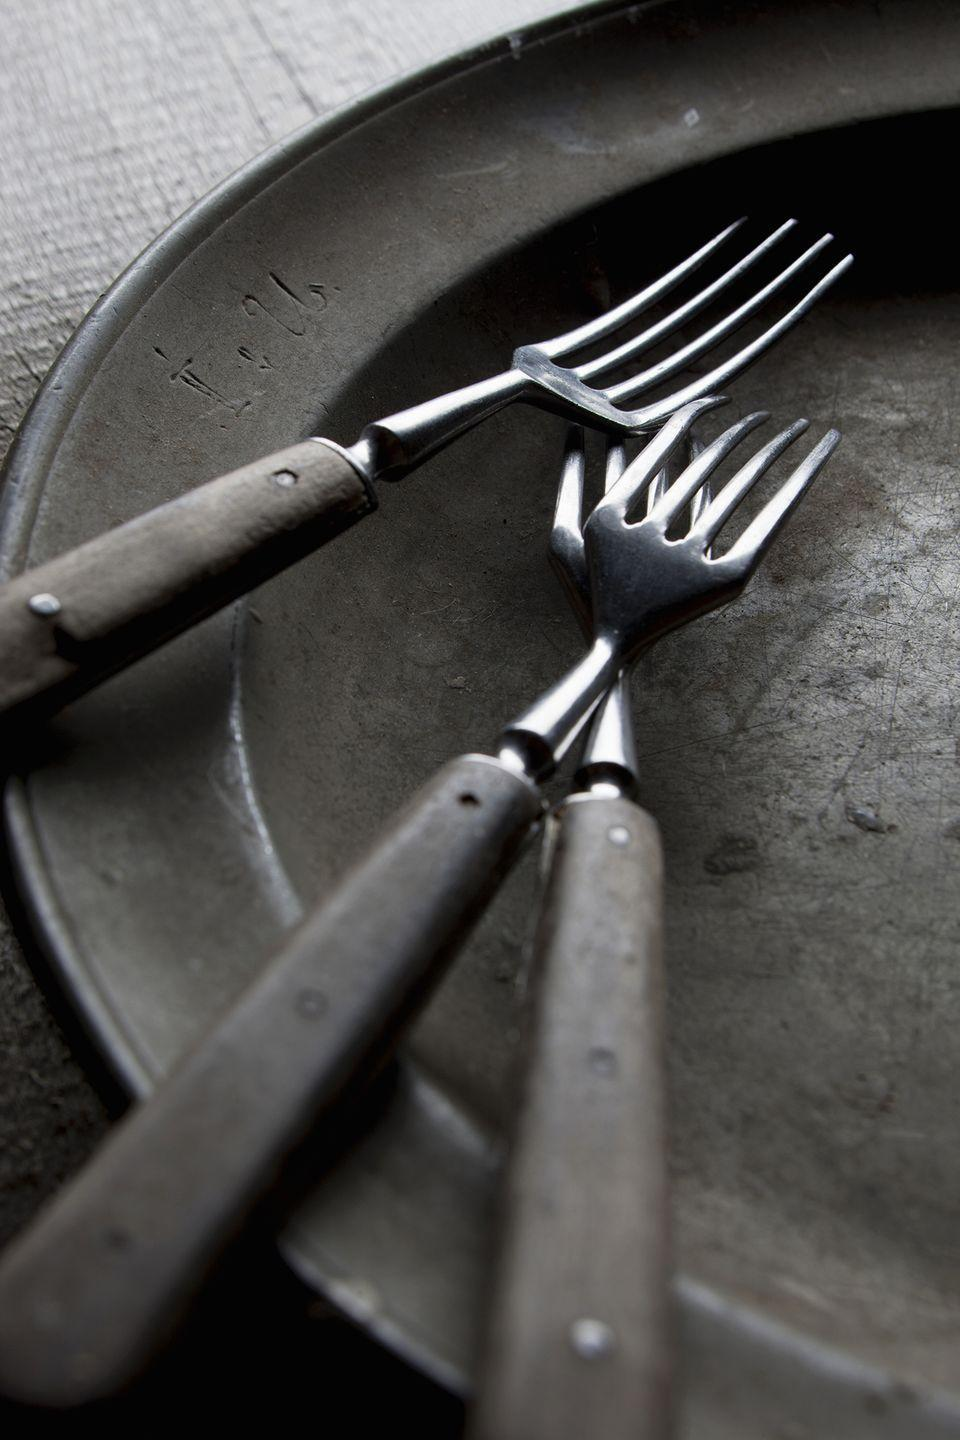 <p>Cheaply made utensils can cause metals and chemicals to leach and contaminate your food, but sterling silver and stainless steel are safe to use. </p>